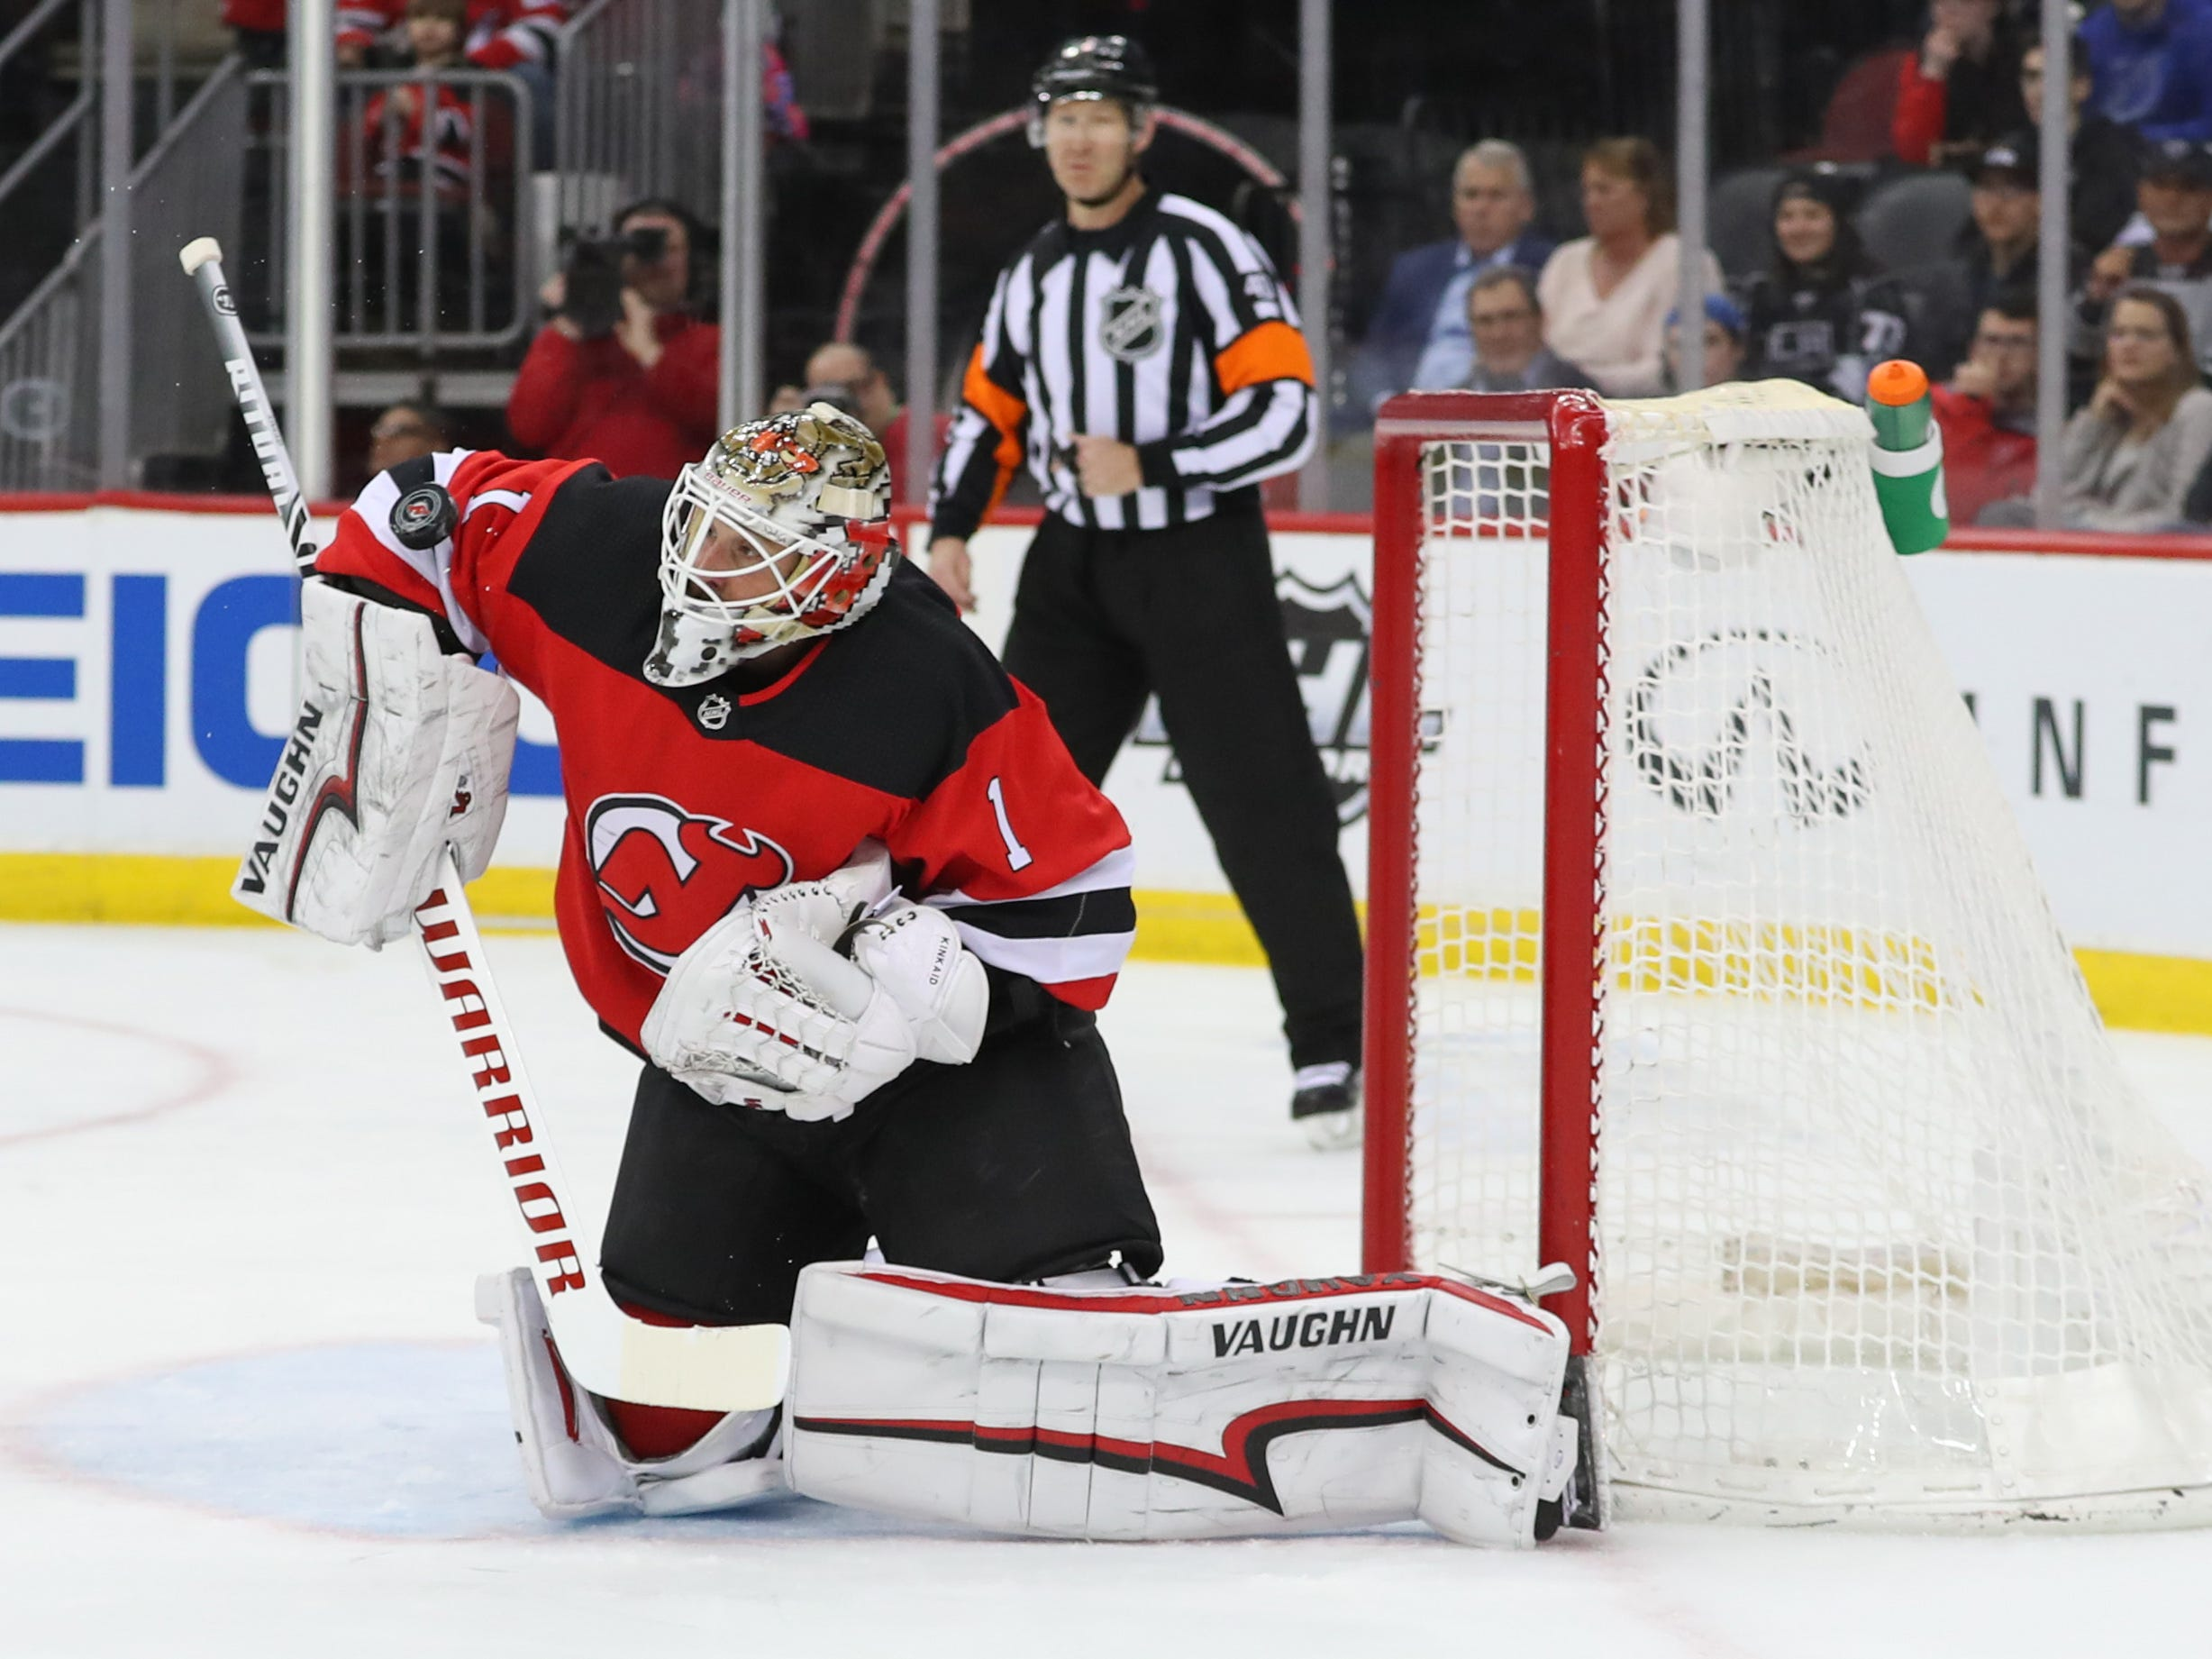 Feb 5, 2019; Newark, NJ, USA; New Jersey Devils goaltender Keith Kinkaid (1) makes a save during the first period of their game against the Los Angeles Kings at Prudential Center.